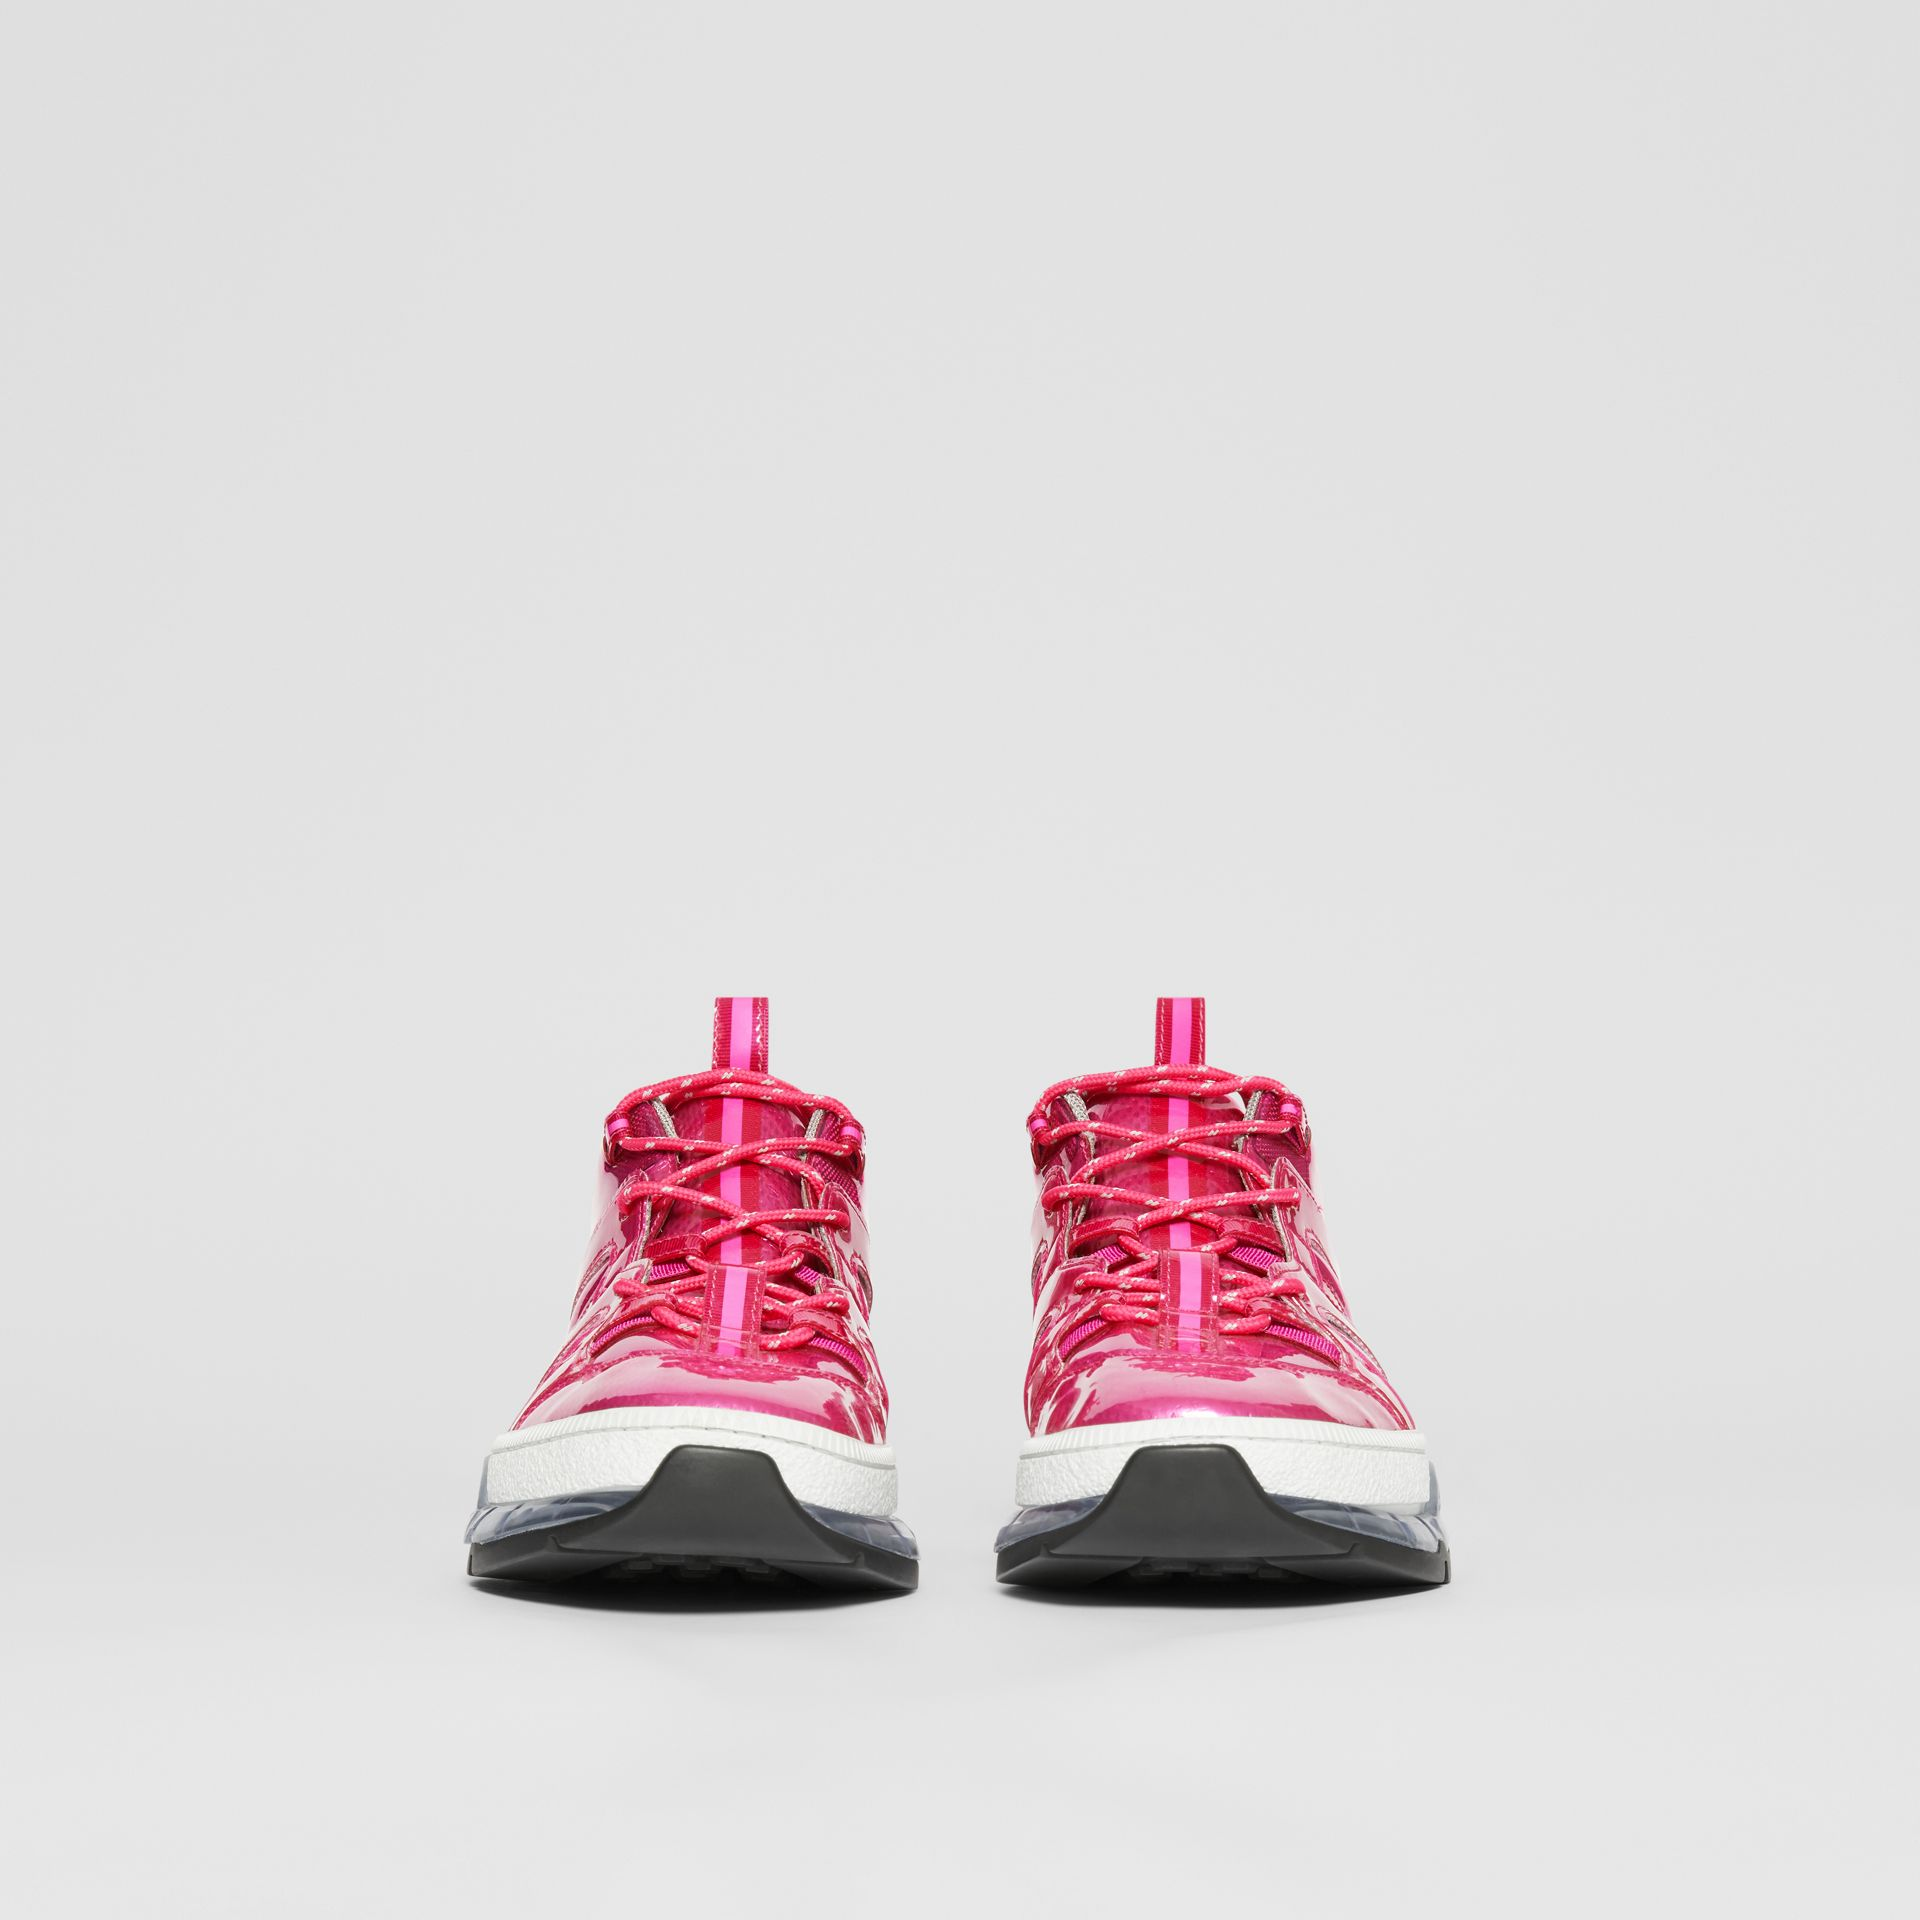 Sneakers Union en vinyle et nylon (Fuchsia) - Homme | Burberry - photo de la galerie 2